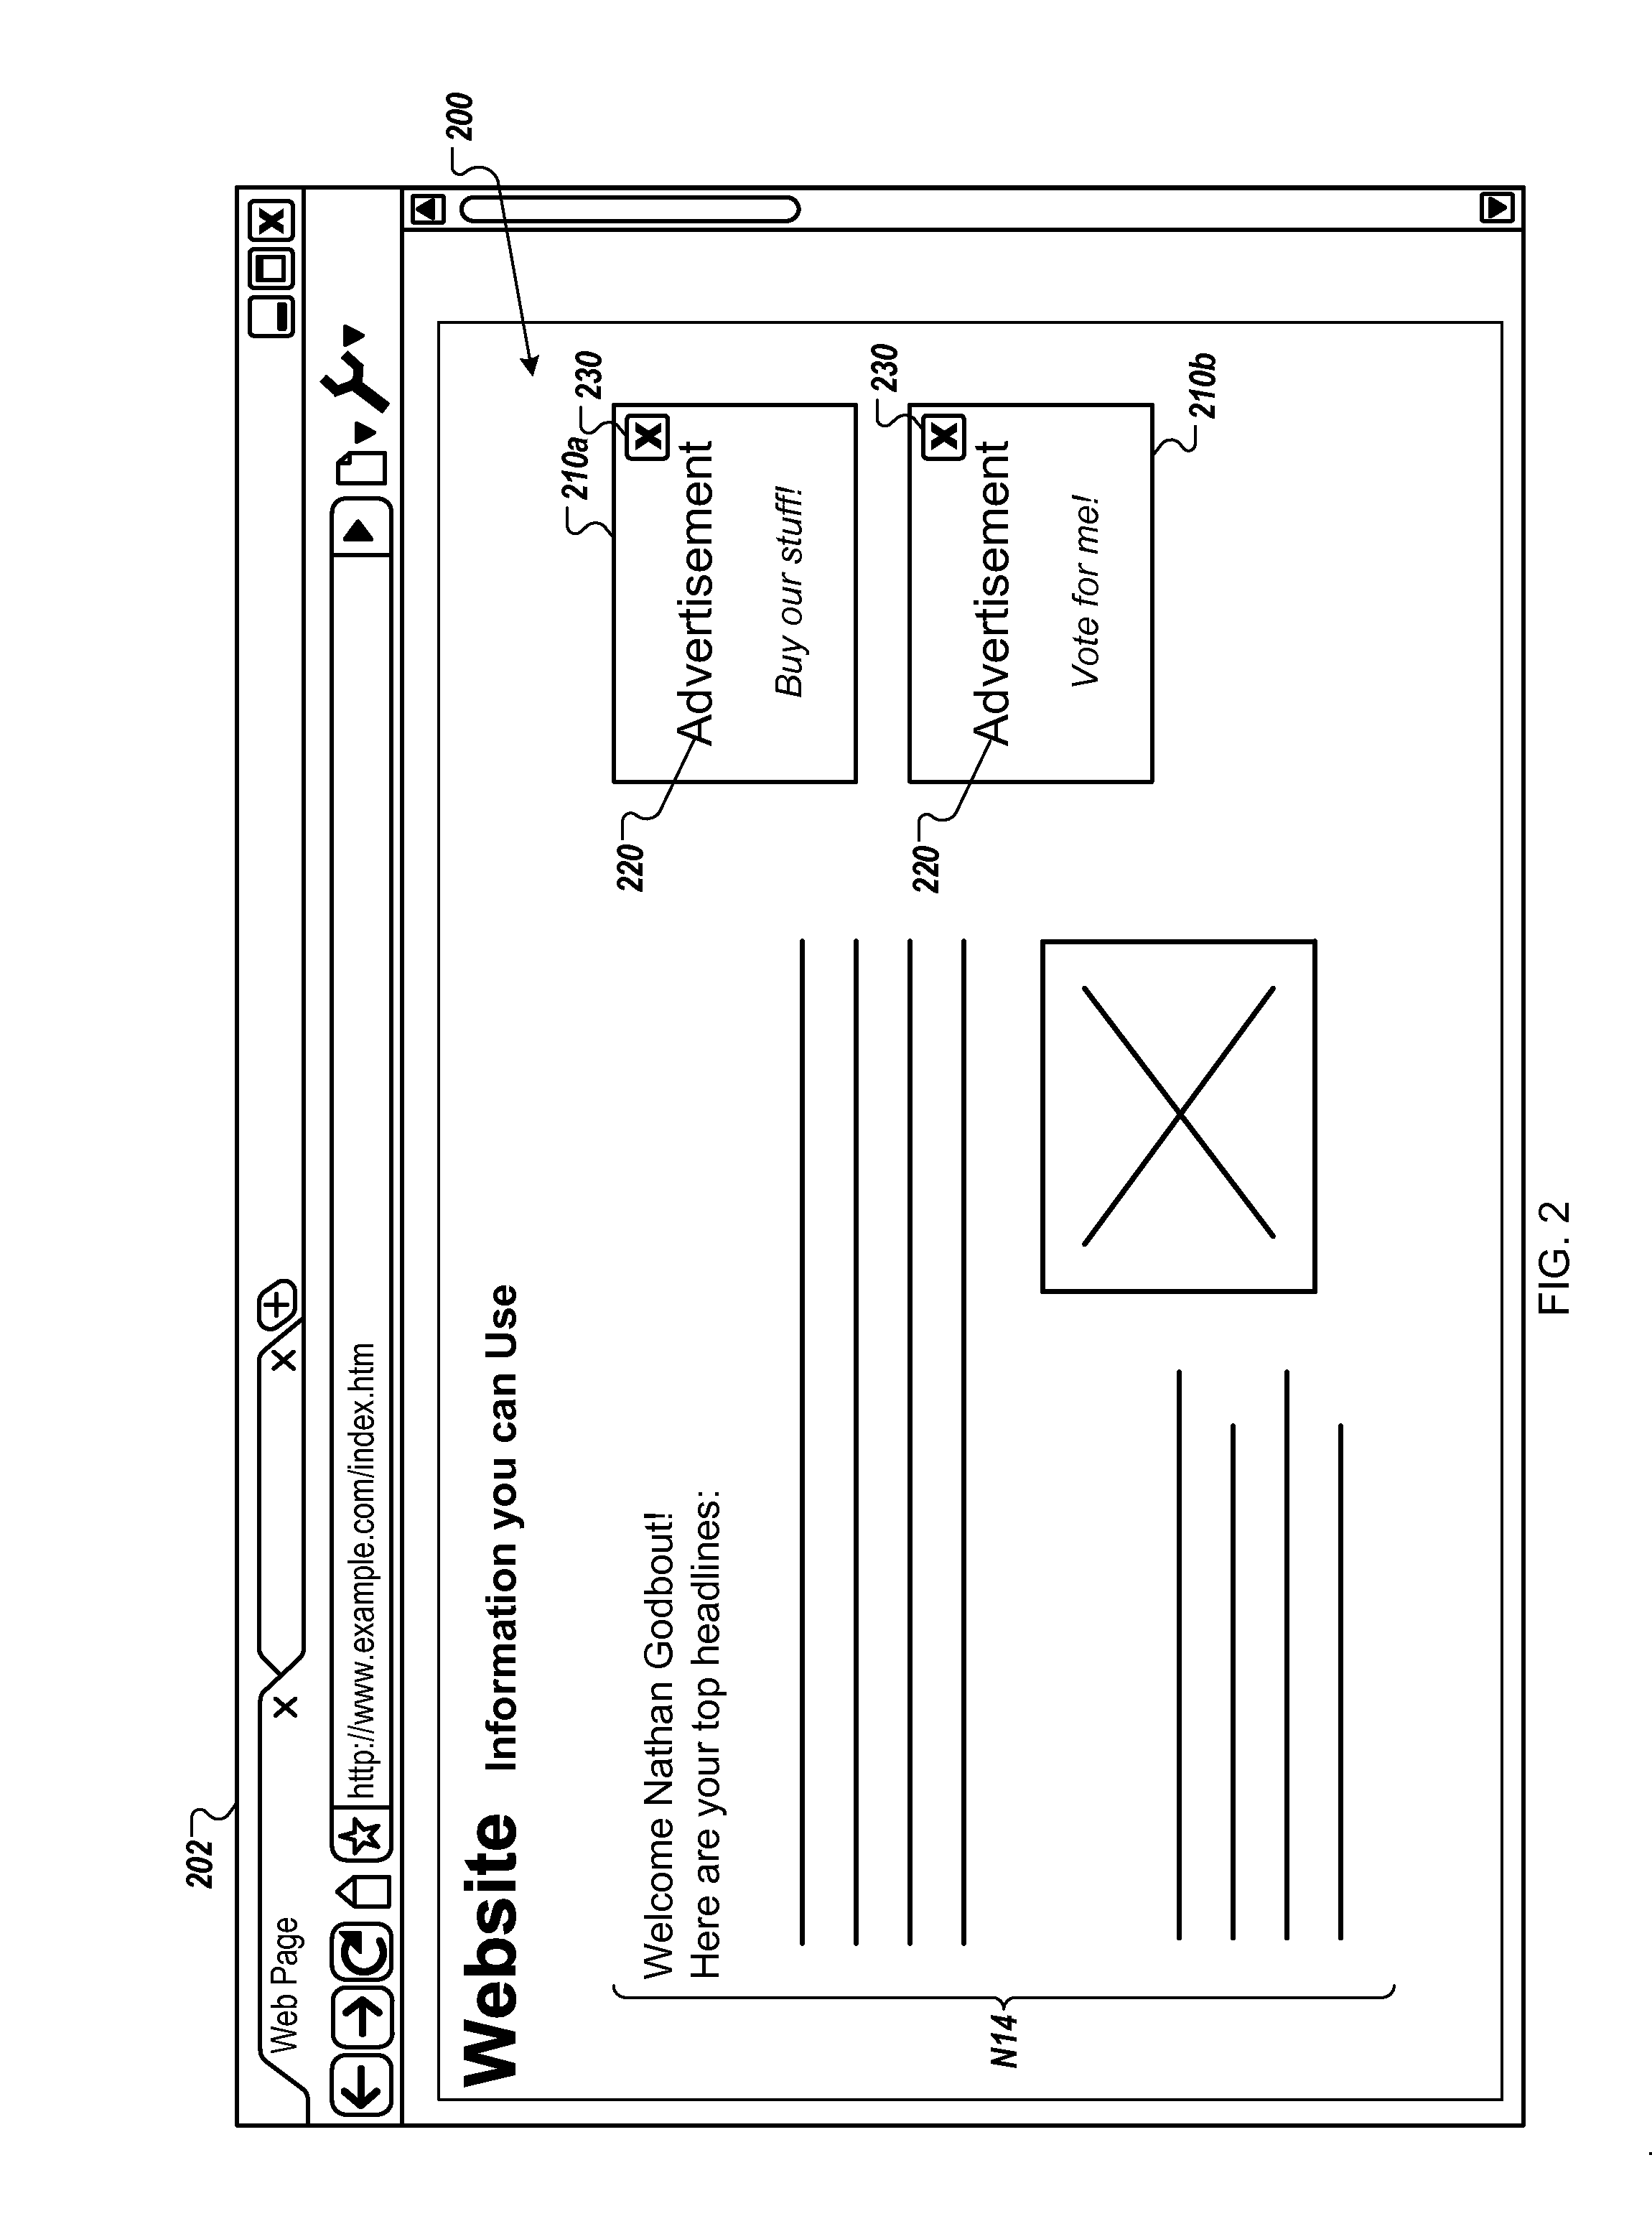 Patent Us20140046753 Affecting Display Of Content Based On Crt Monitor Diagram Cpc 664 Drawing